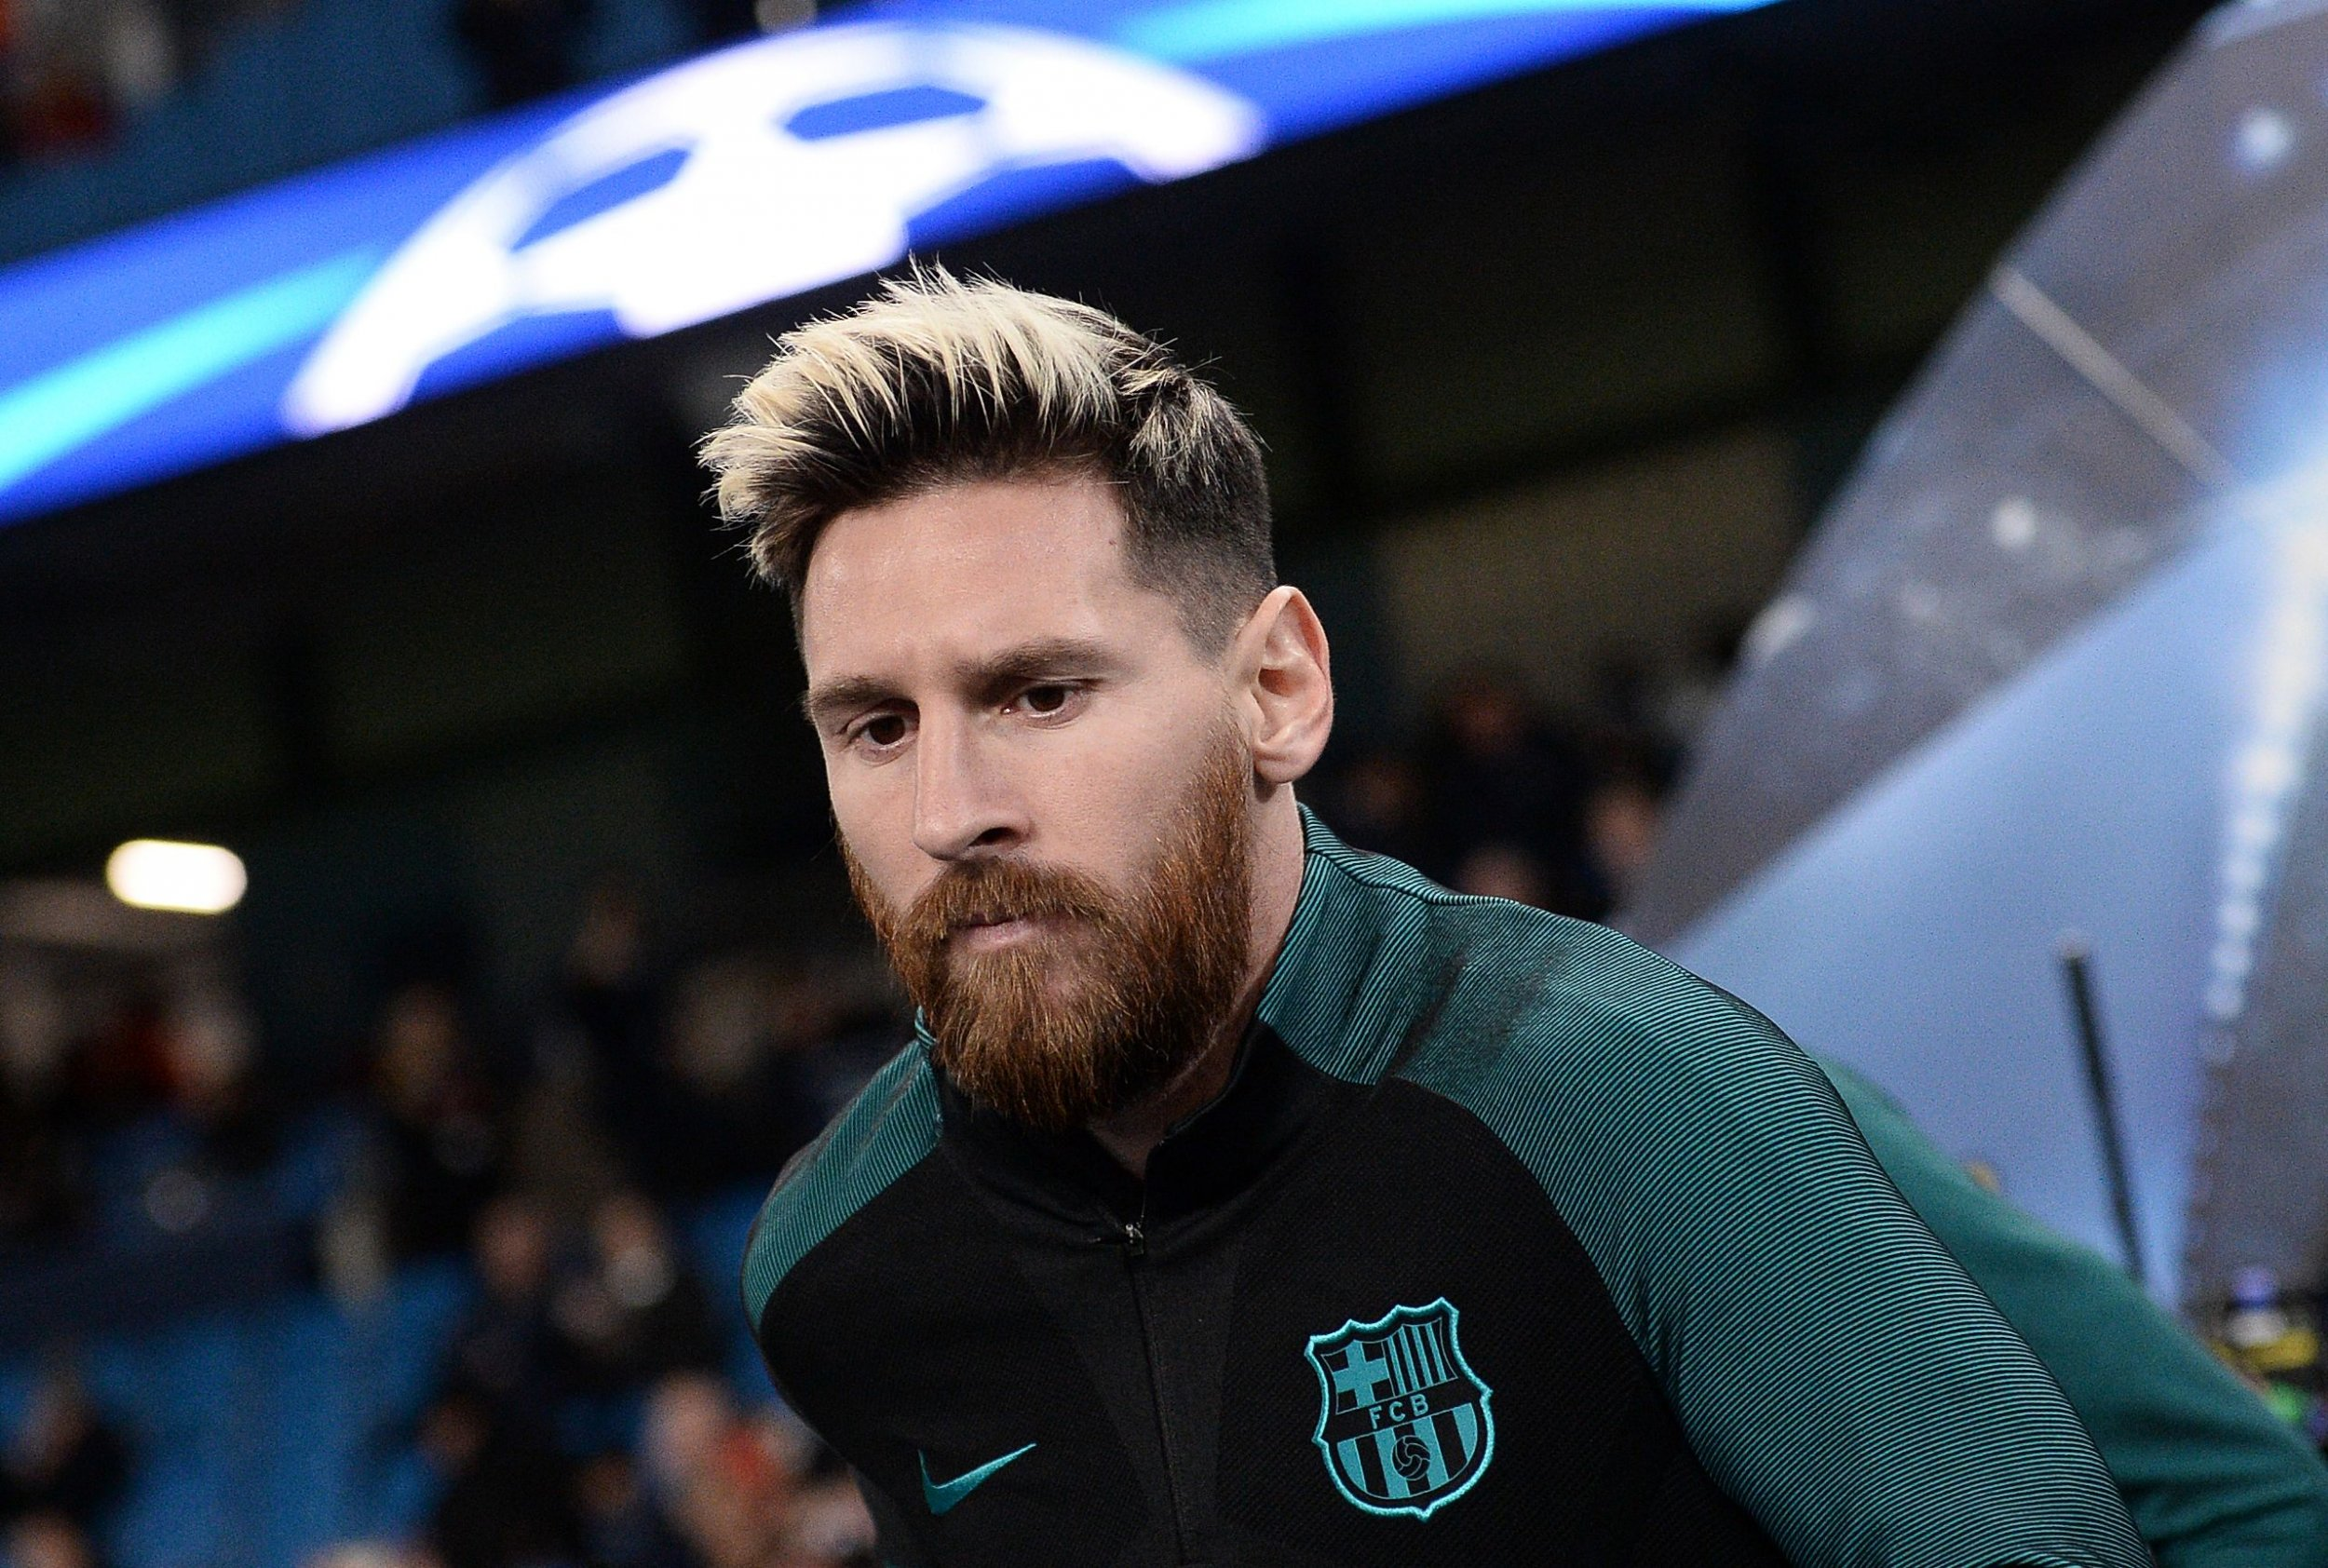 Lionel Messi Before Argentina Vs Chile Looking Good With The Beard Eh Lionelmessi Le Messicuie